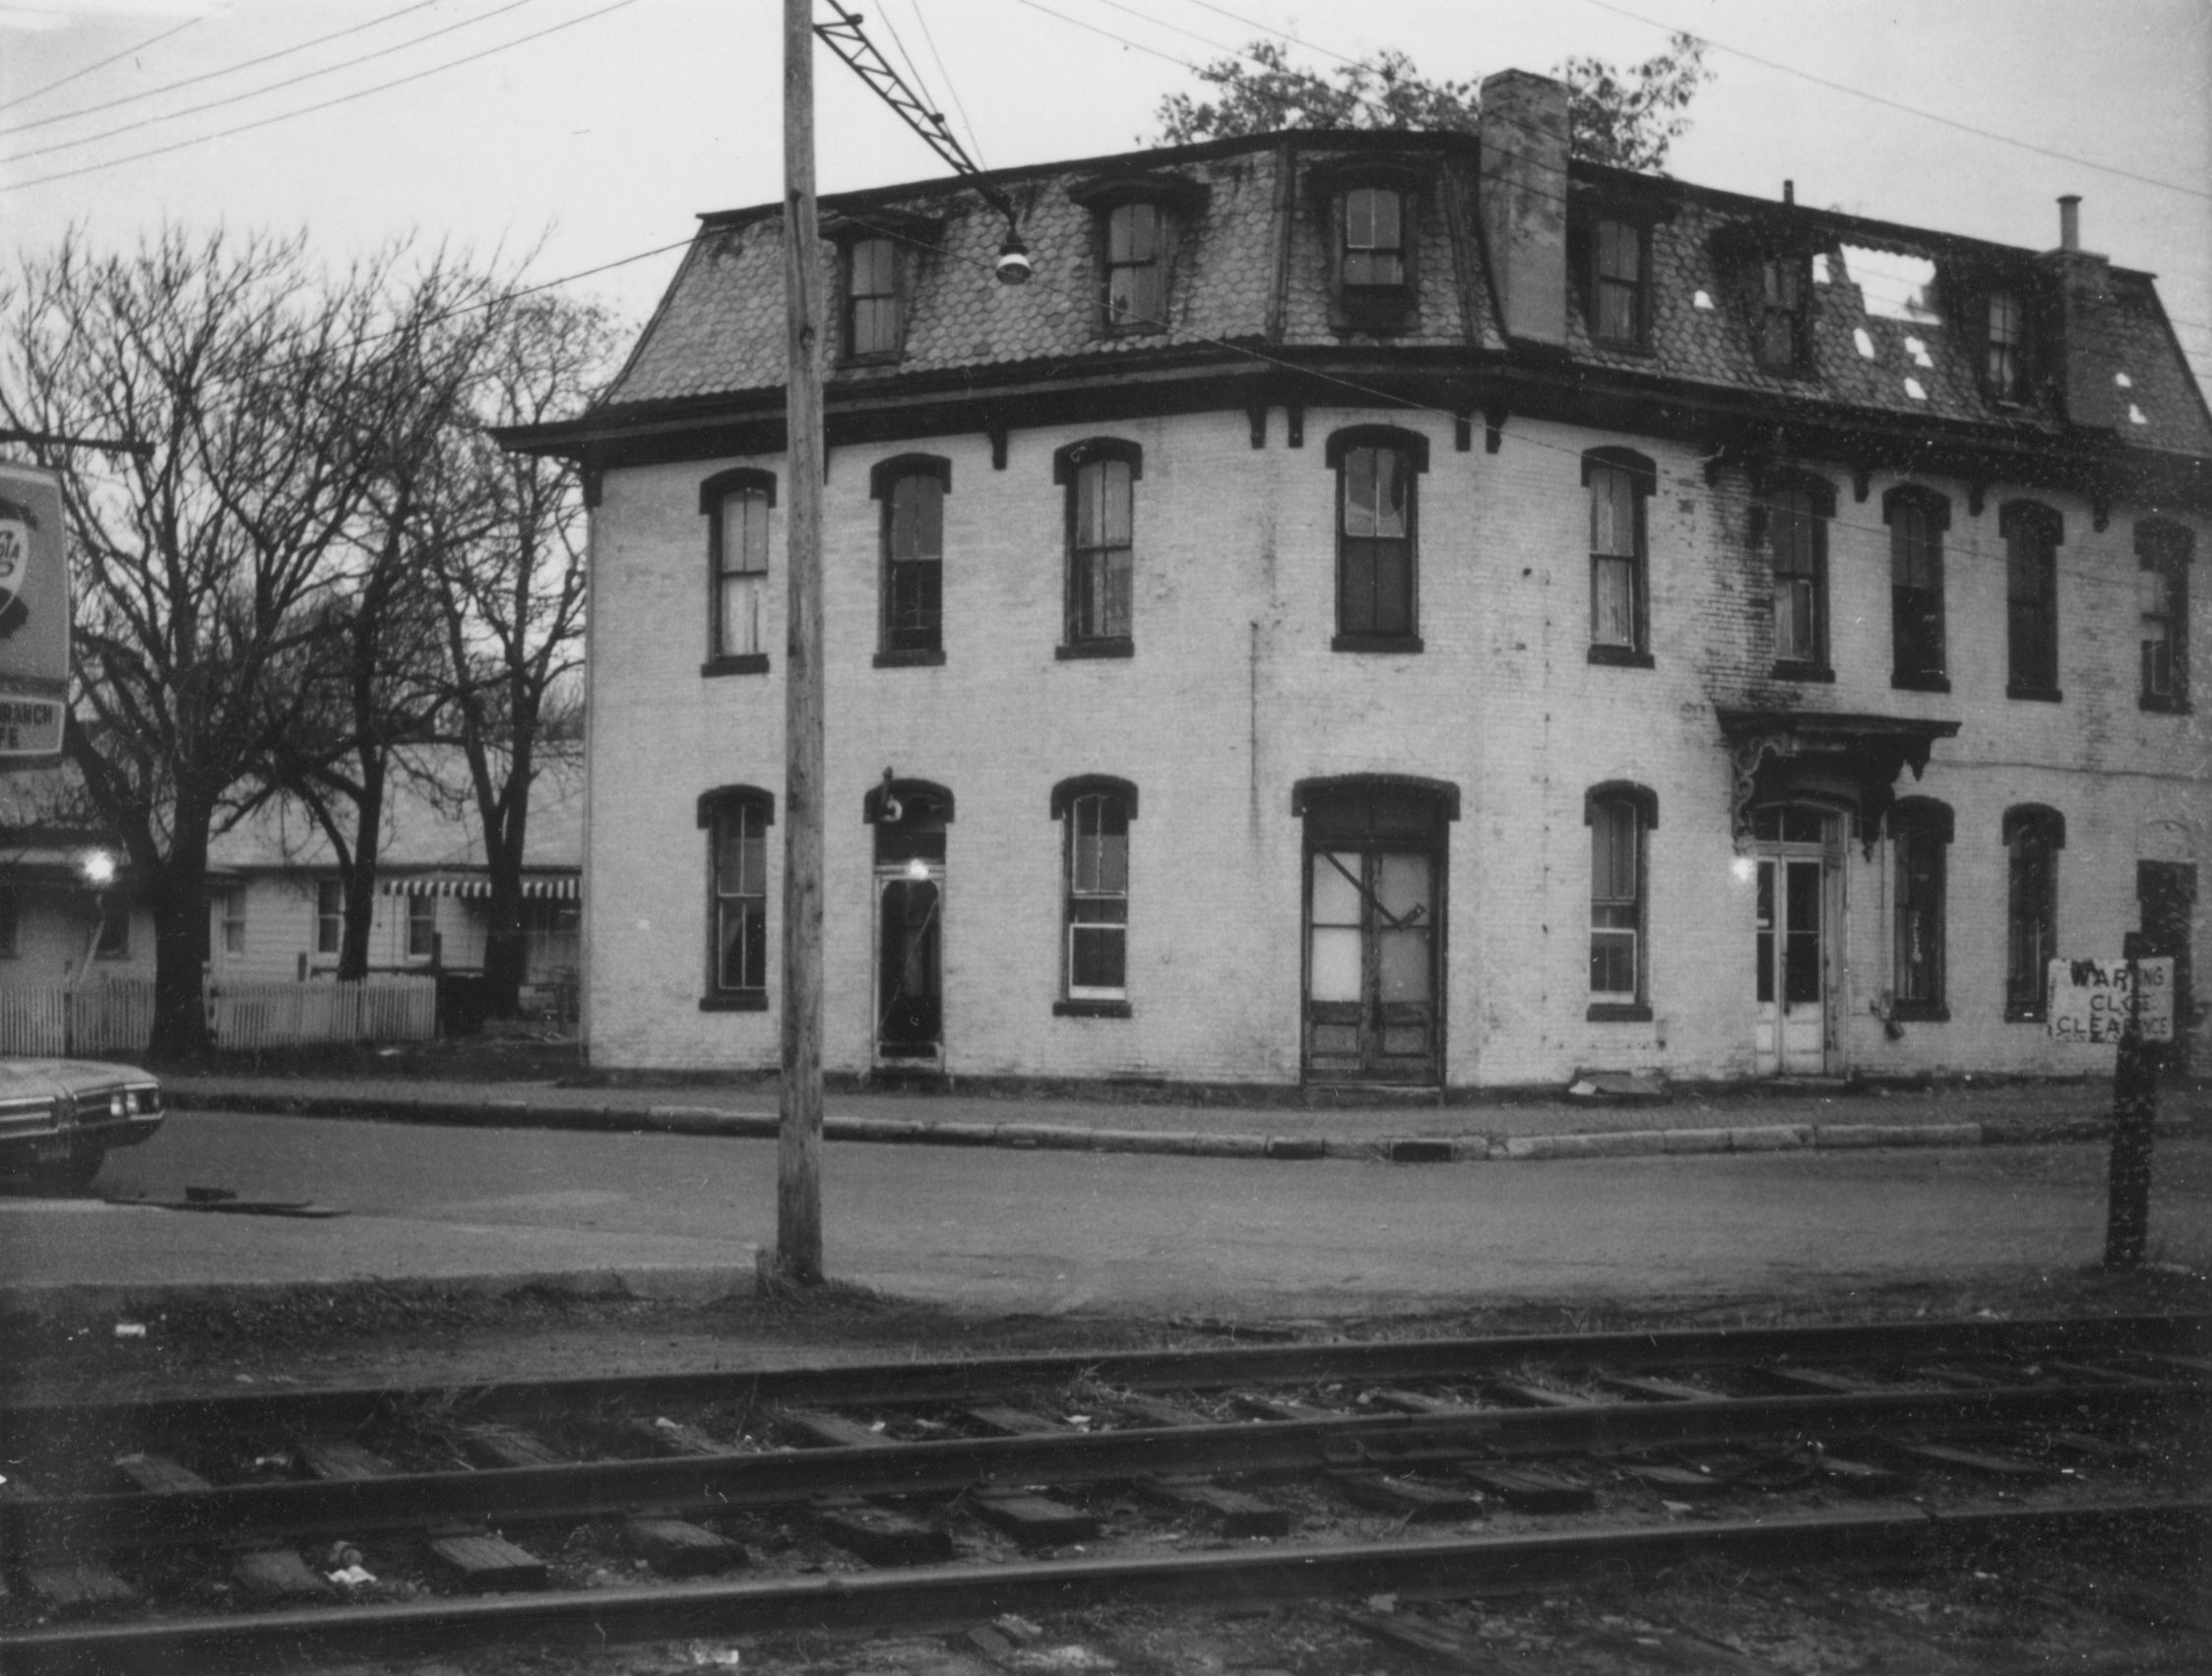 Denny hotel winding and locust photo by charles william